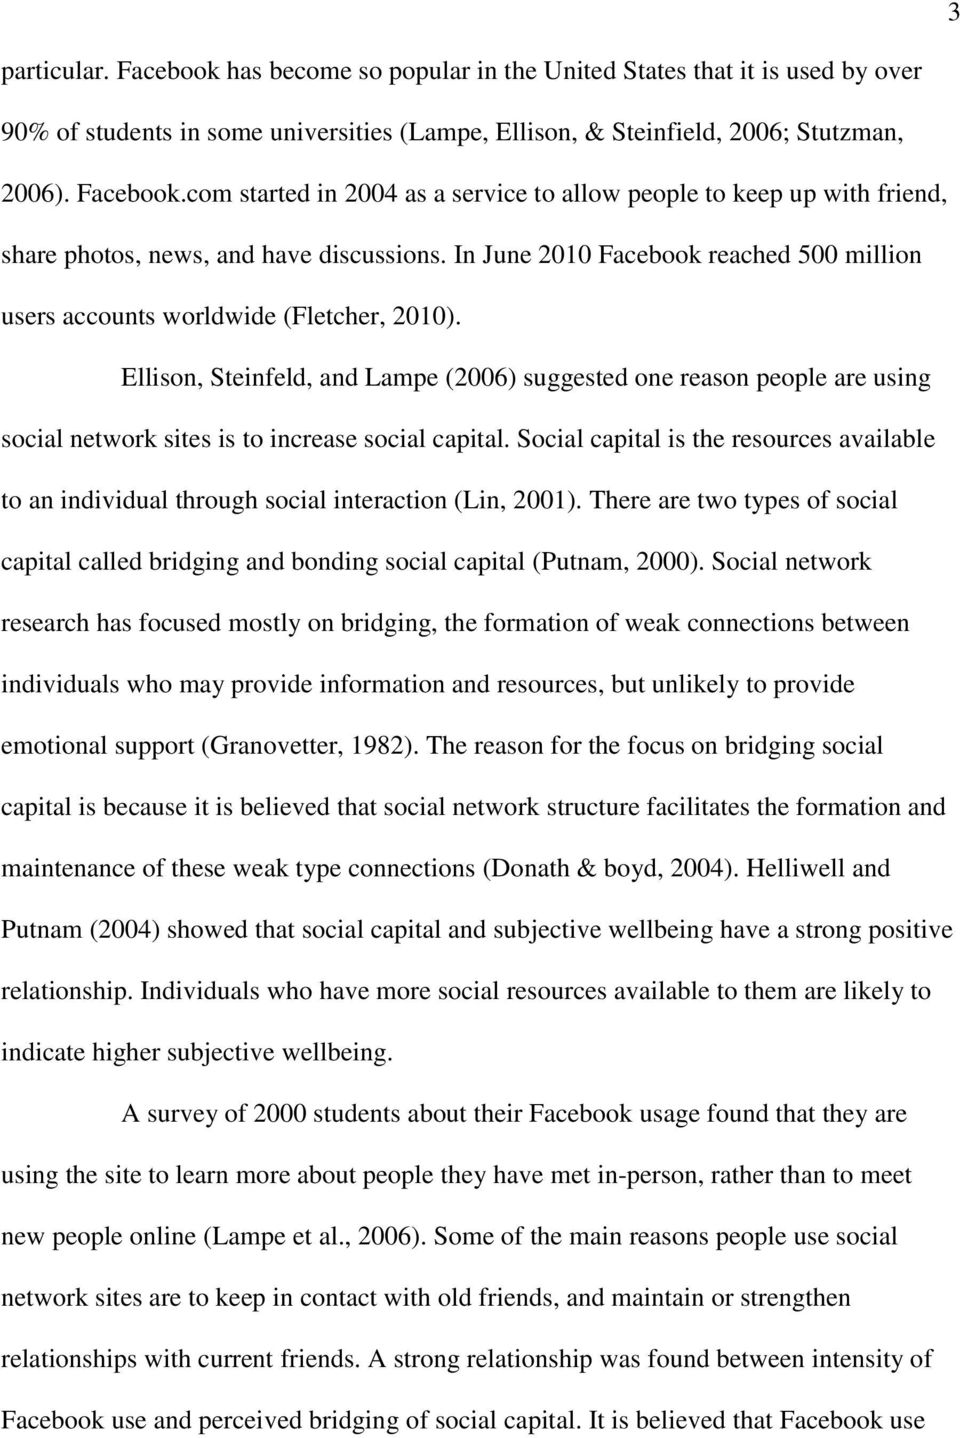 Ellison, Steinfeld, and Lampe (2006) suggested one reason people are using social network sites is to increase social capital.